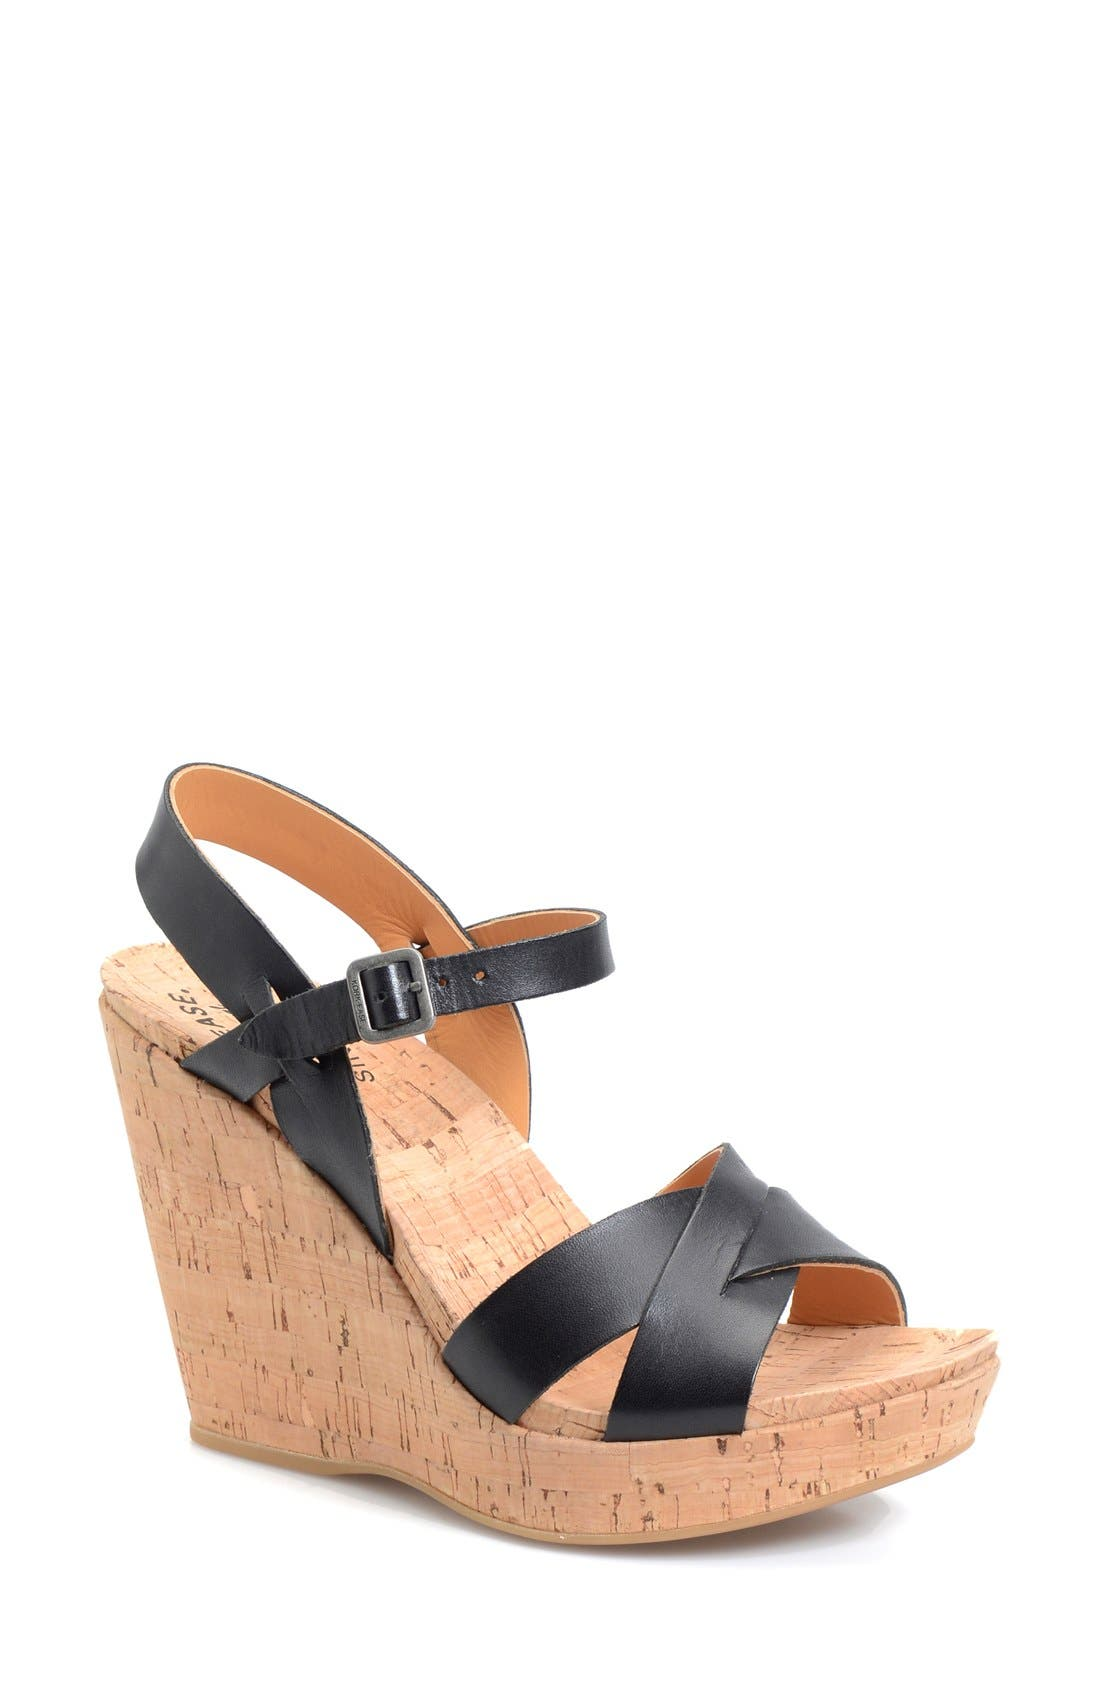 Alternate Image 1 Selected - Kork-Ease® 'Bette' Cork Wedge (Women)